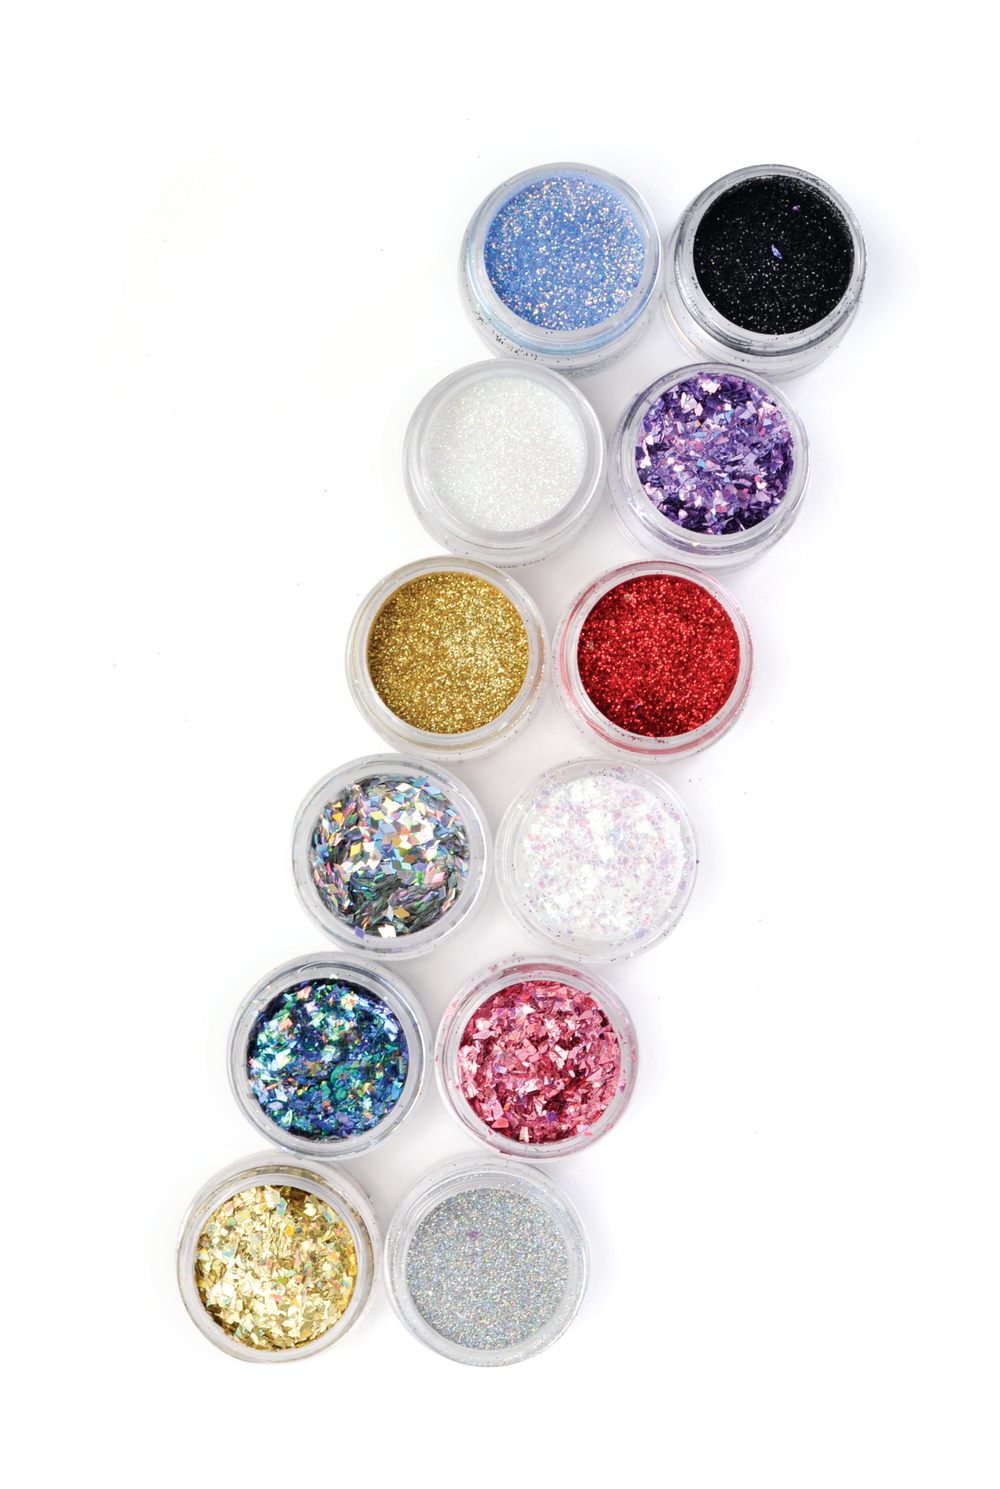 <p>Let the artist in you shine with SuperNail&rsquo;s Glitter Theory glitter kit containing beautiful and vibrant loose glitters that can be combined with nail polish, gel-polish, and acrylics.&nbsp;</p>